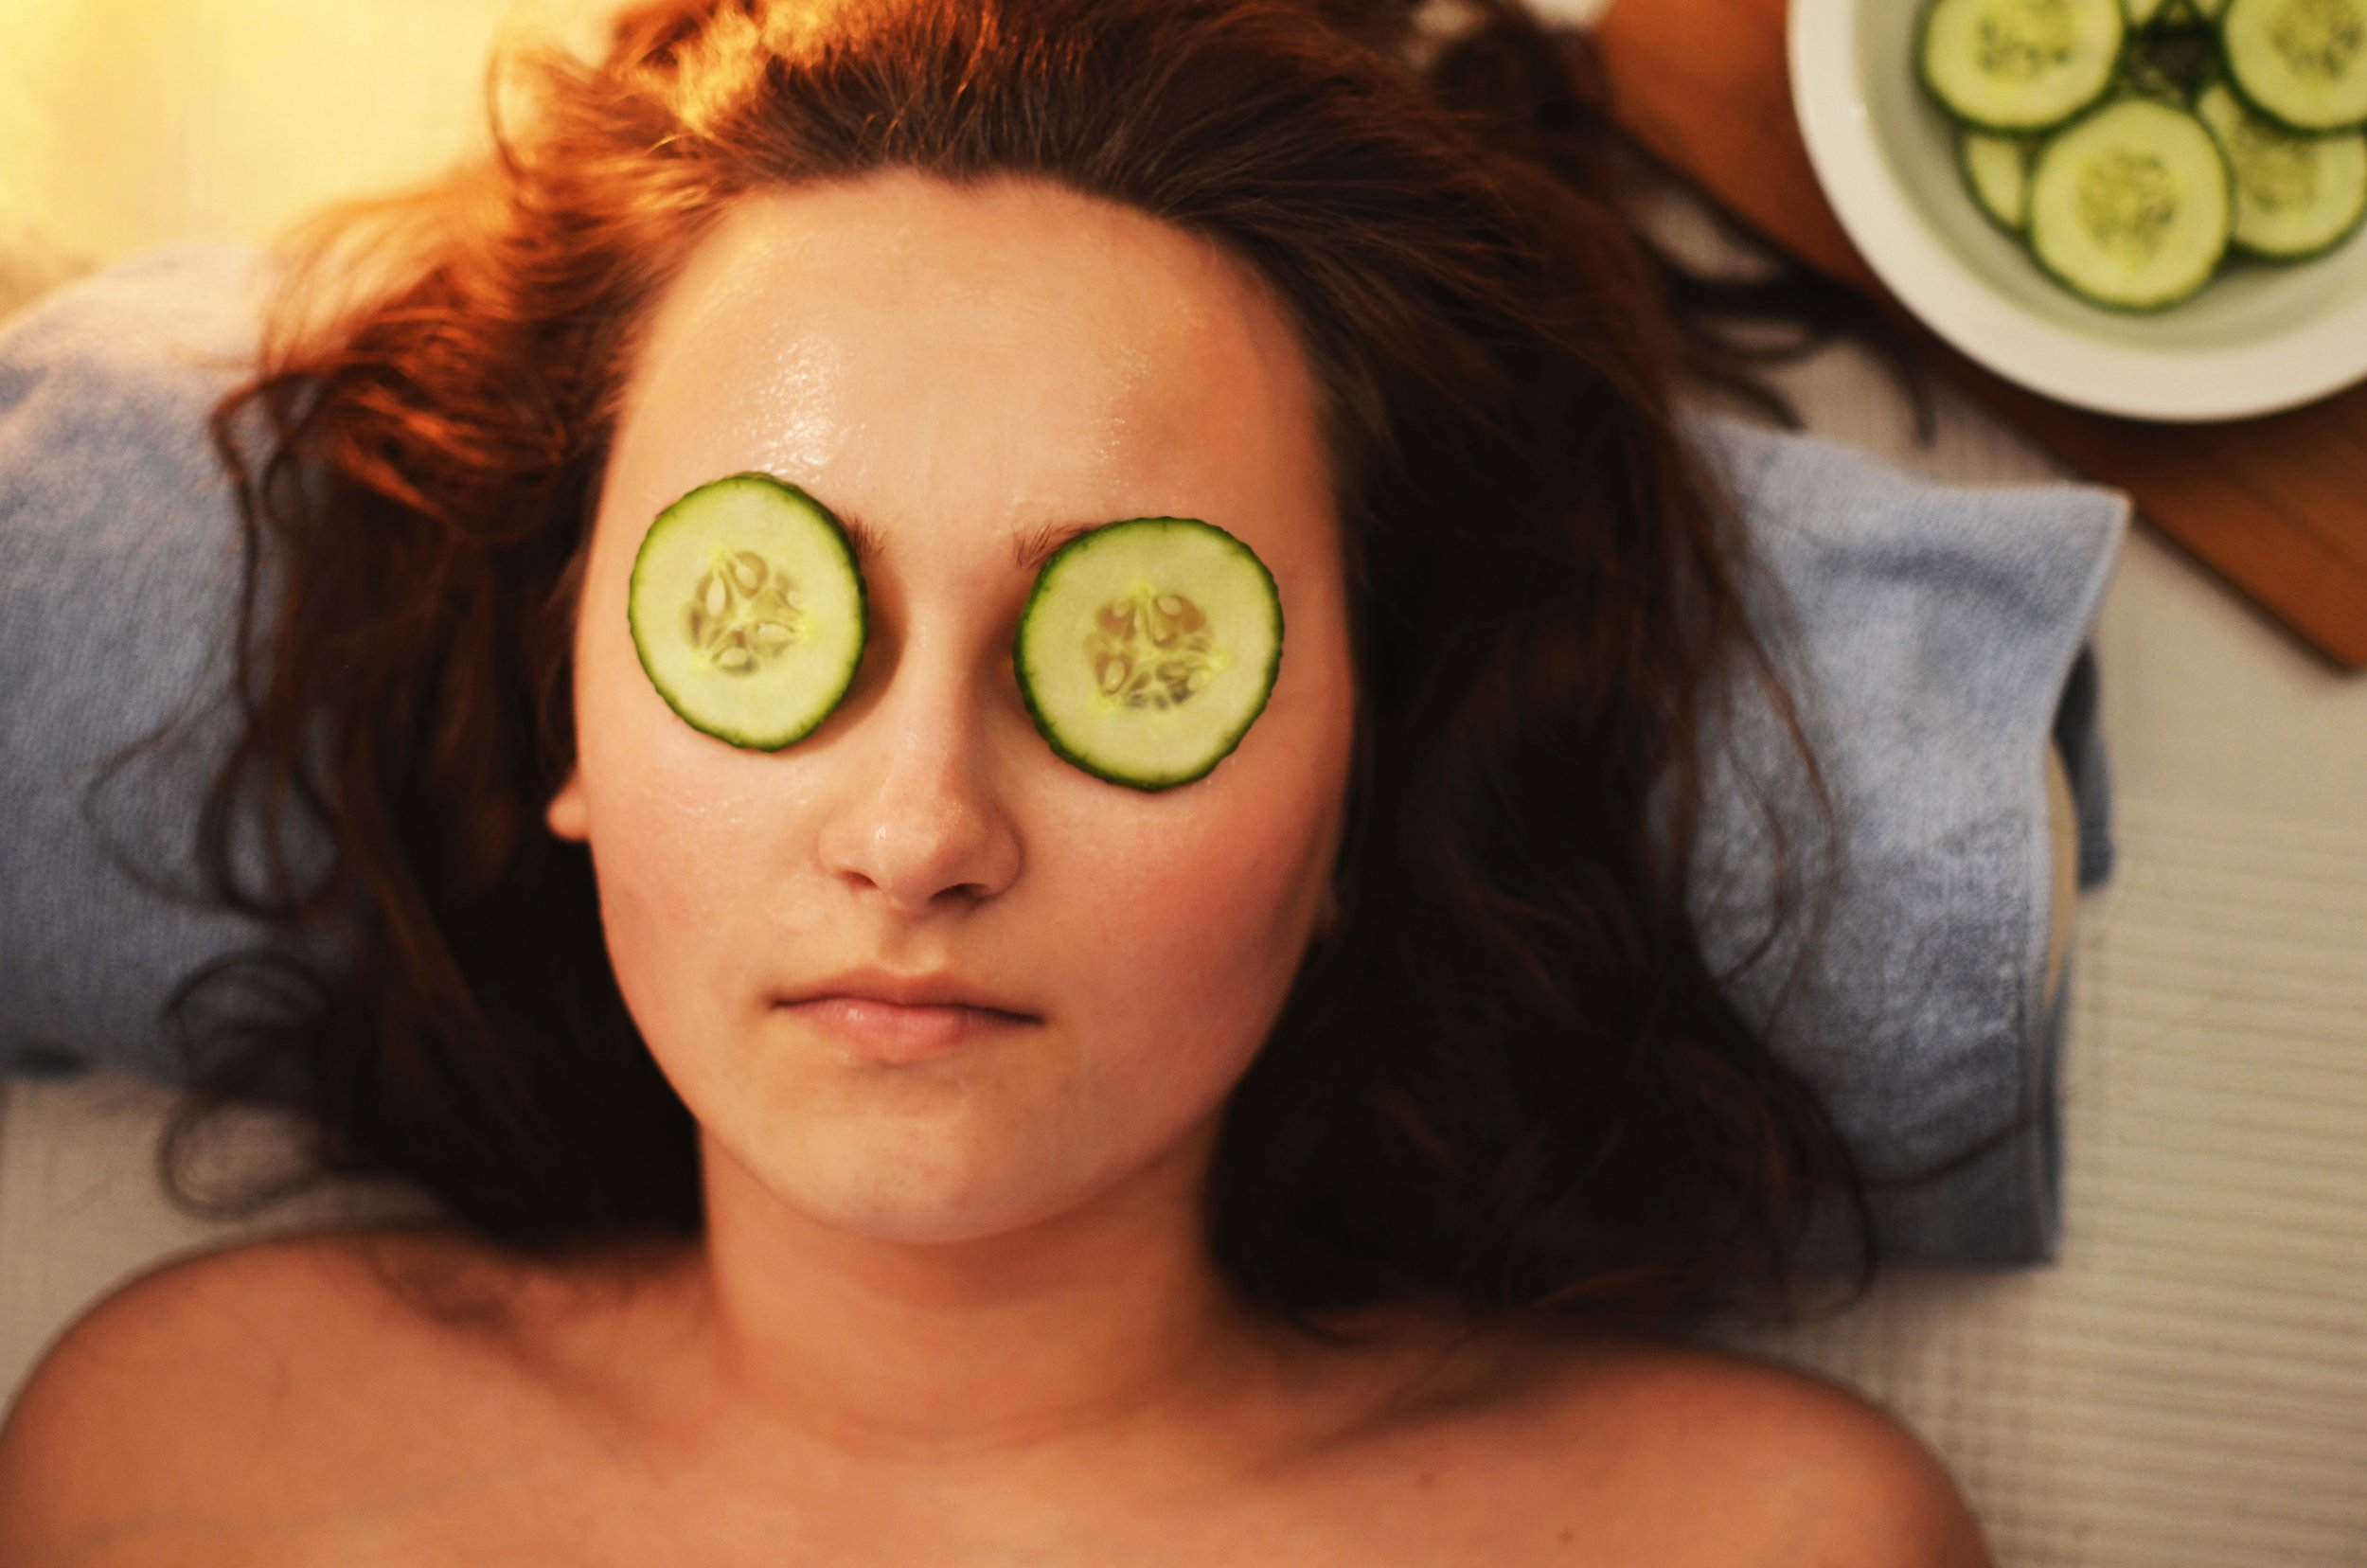 beauty-cucumber-face-3192.jpg